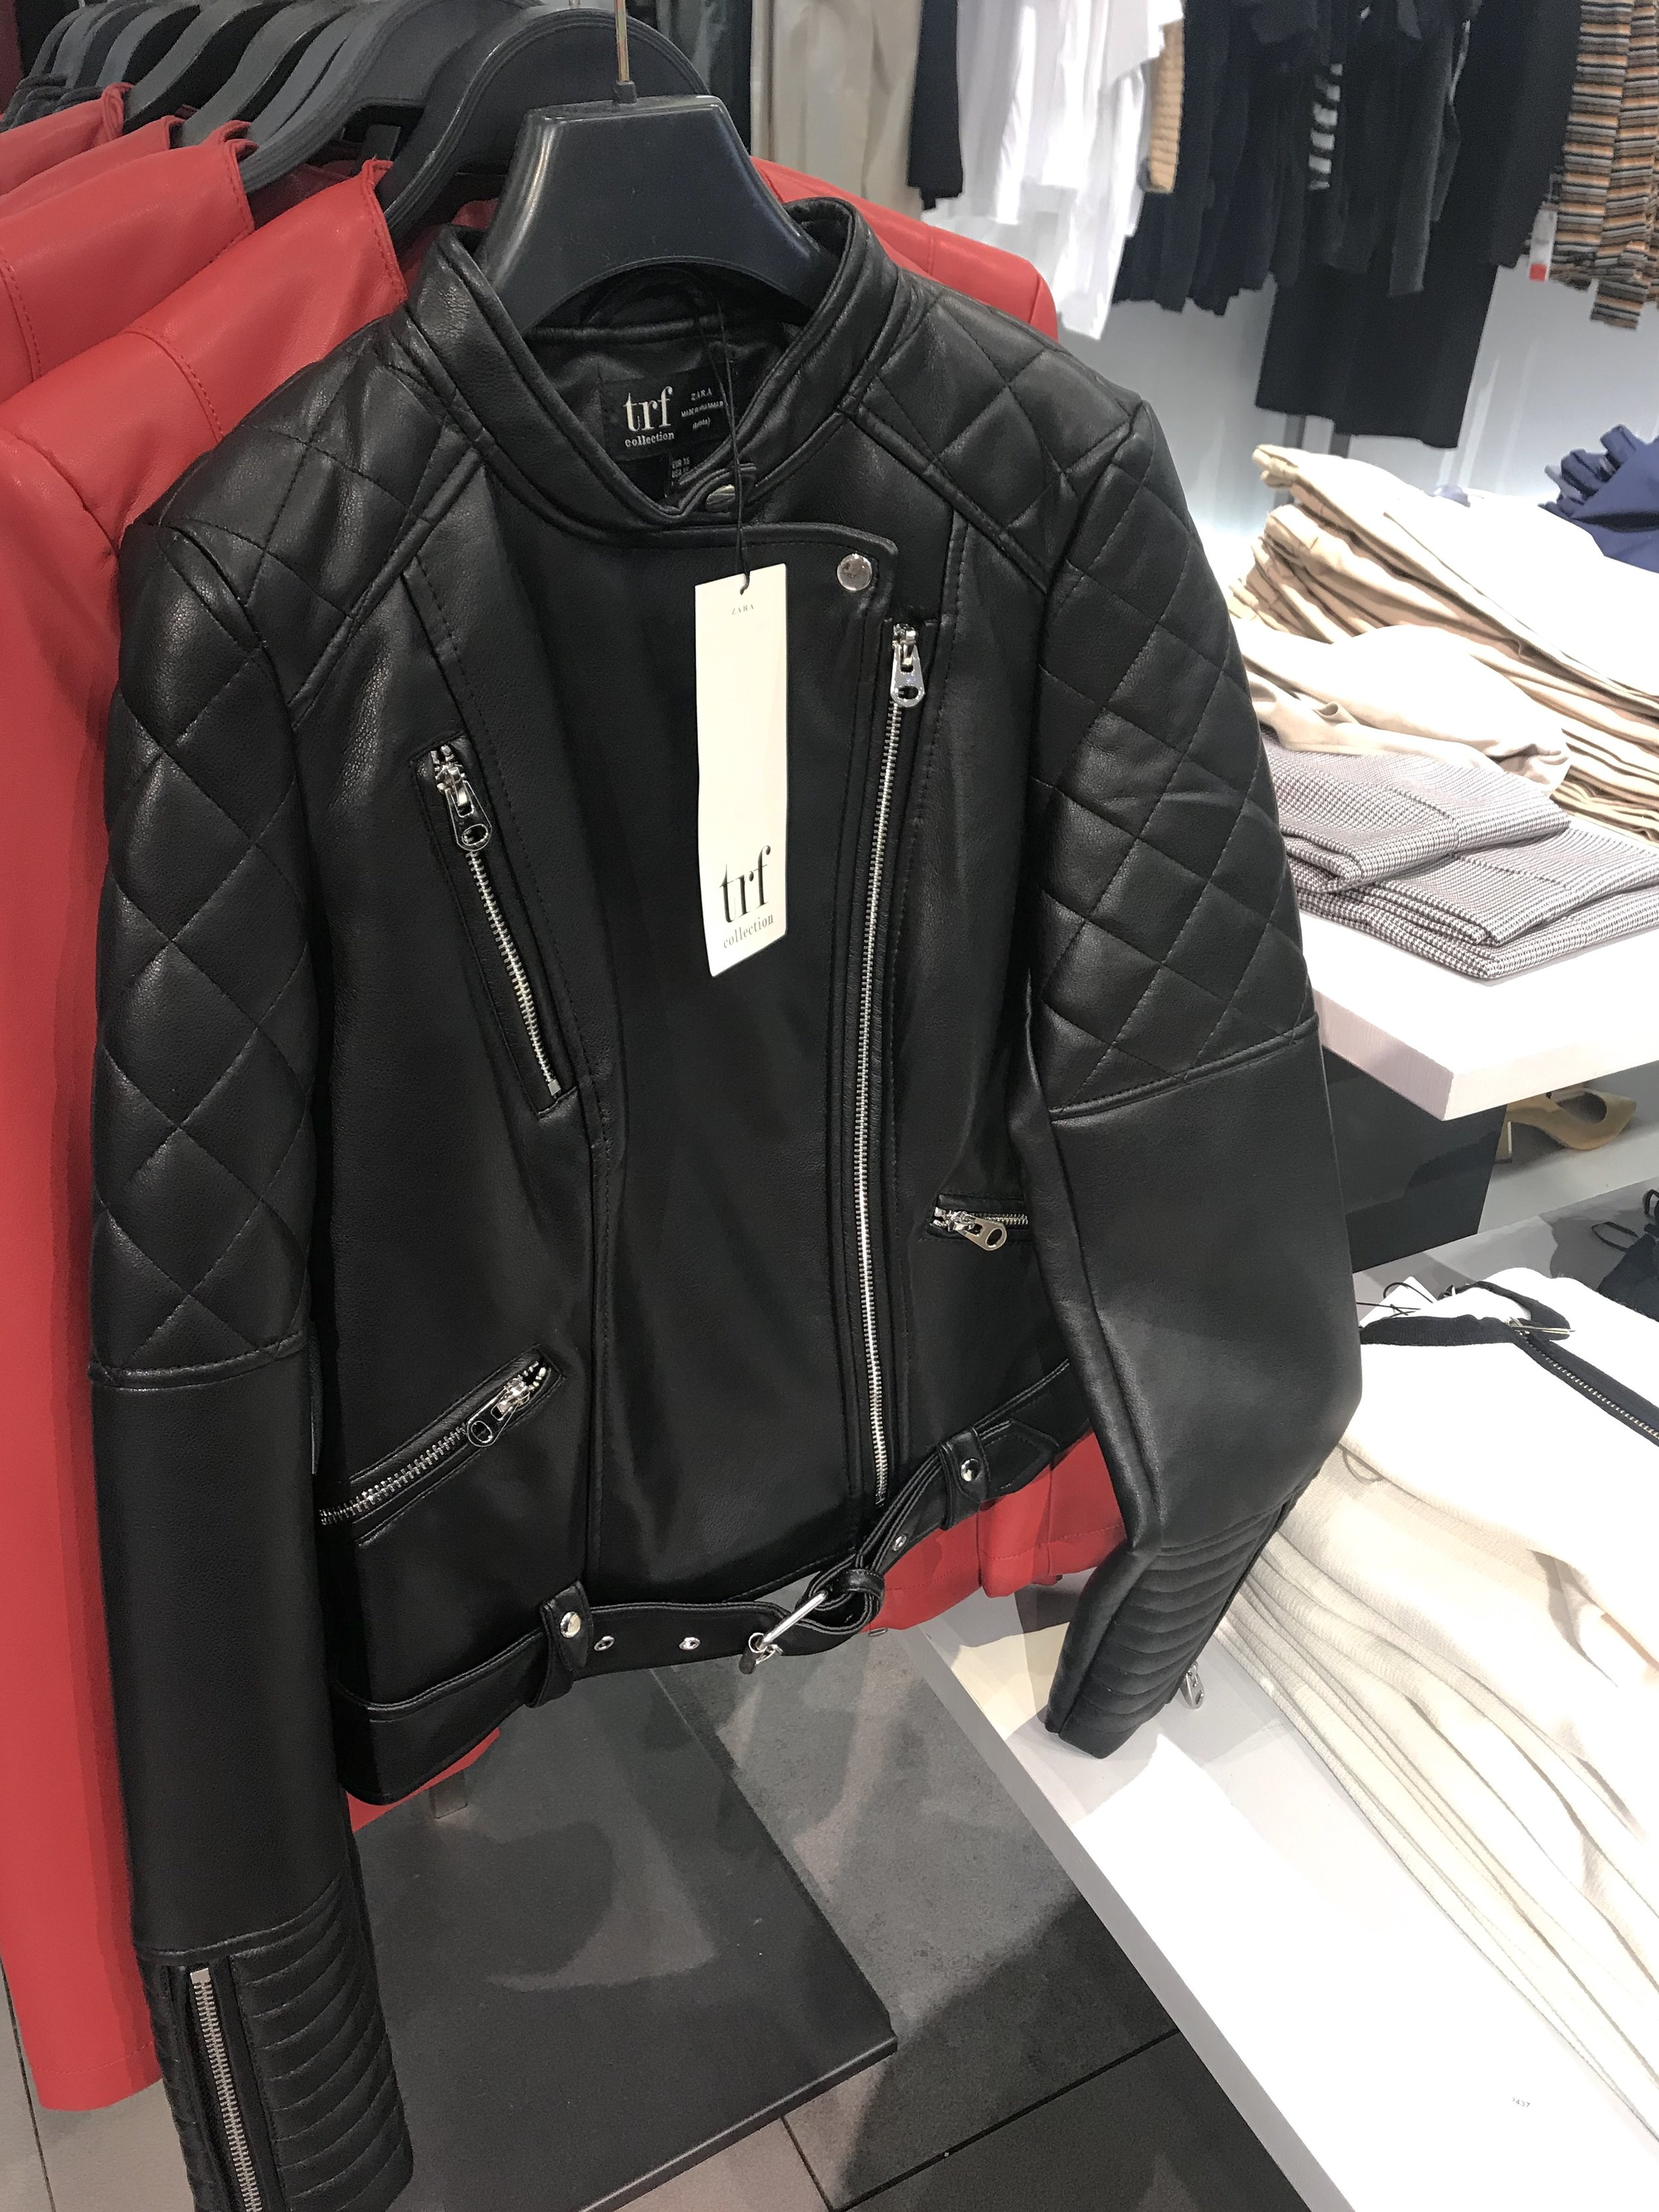 Ah! This leather biker jacket I almost bought but it is just too bulky for me.